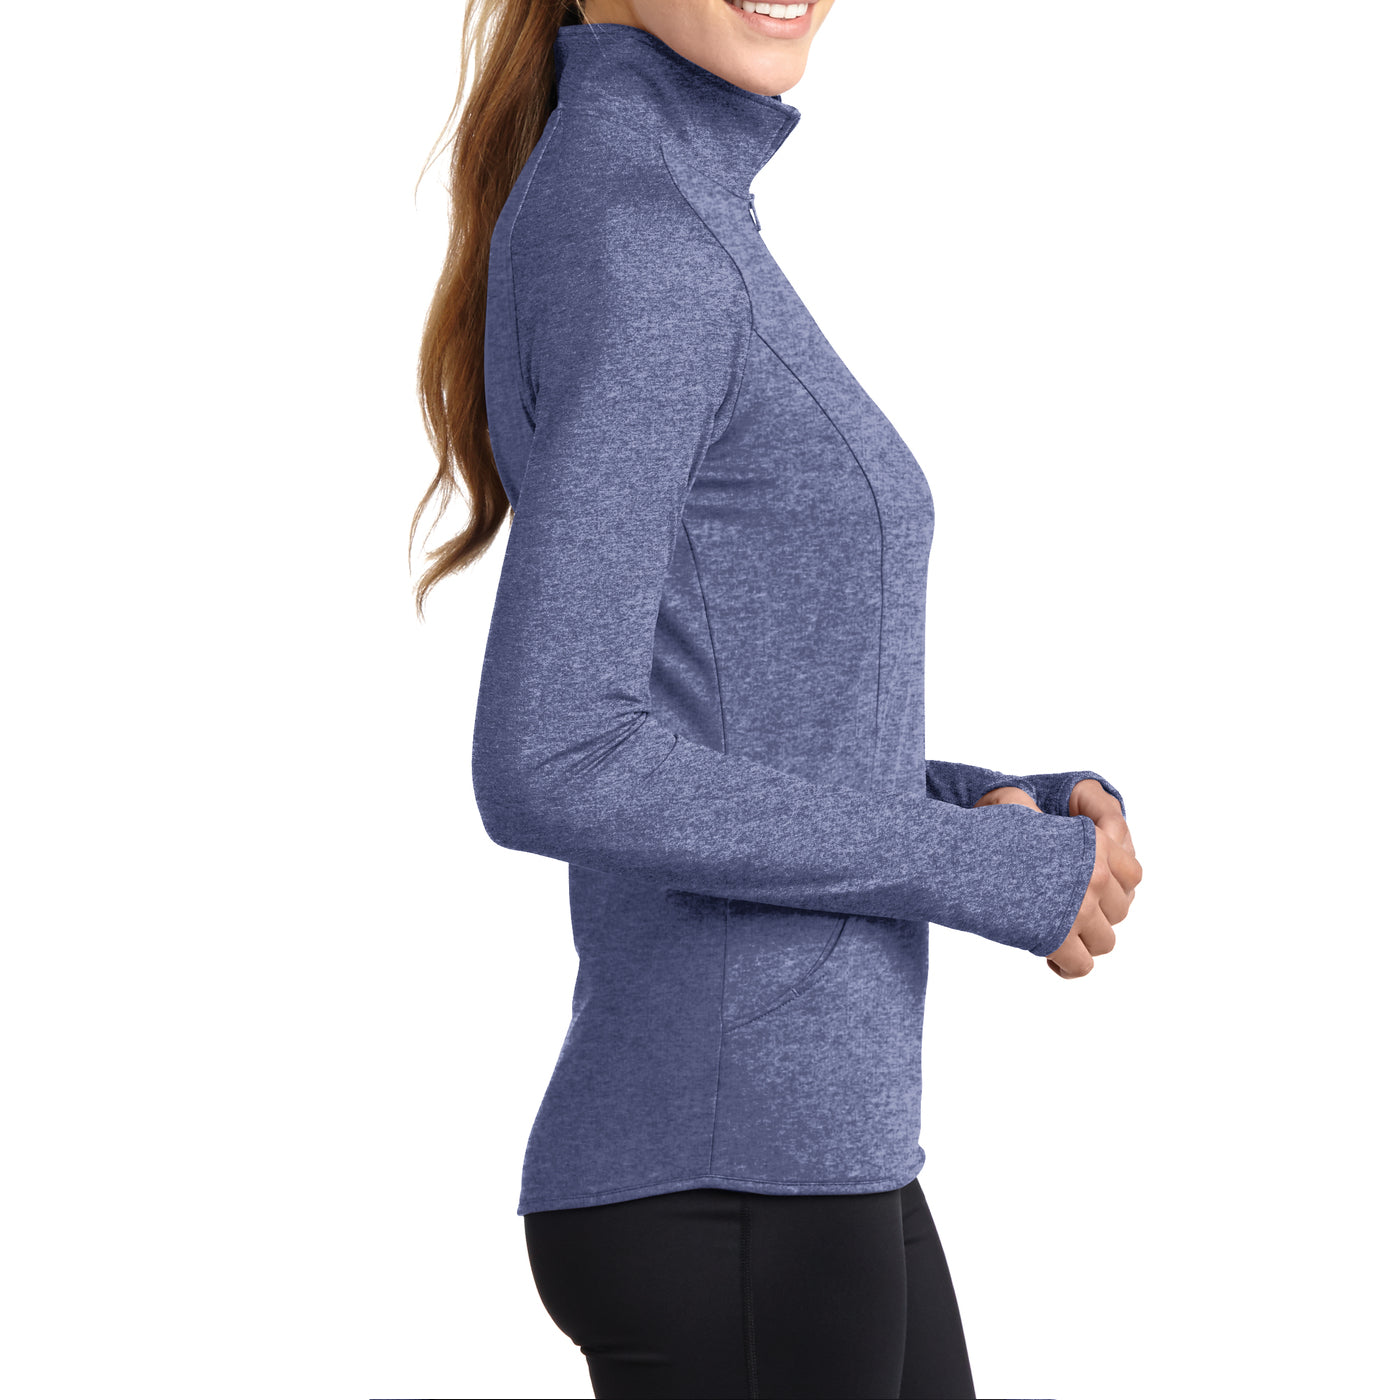 Women's Sport Wick Stretch 1/2 Zip Pullover - True Navy Heather - Side